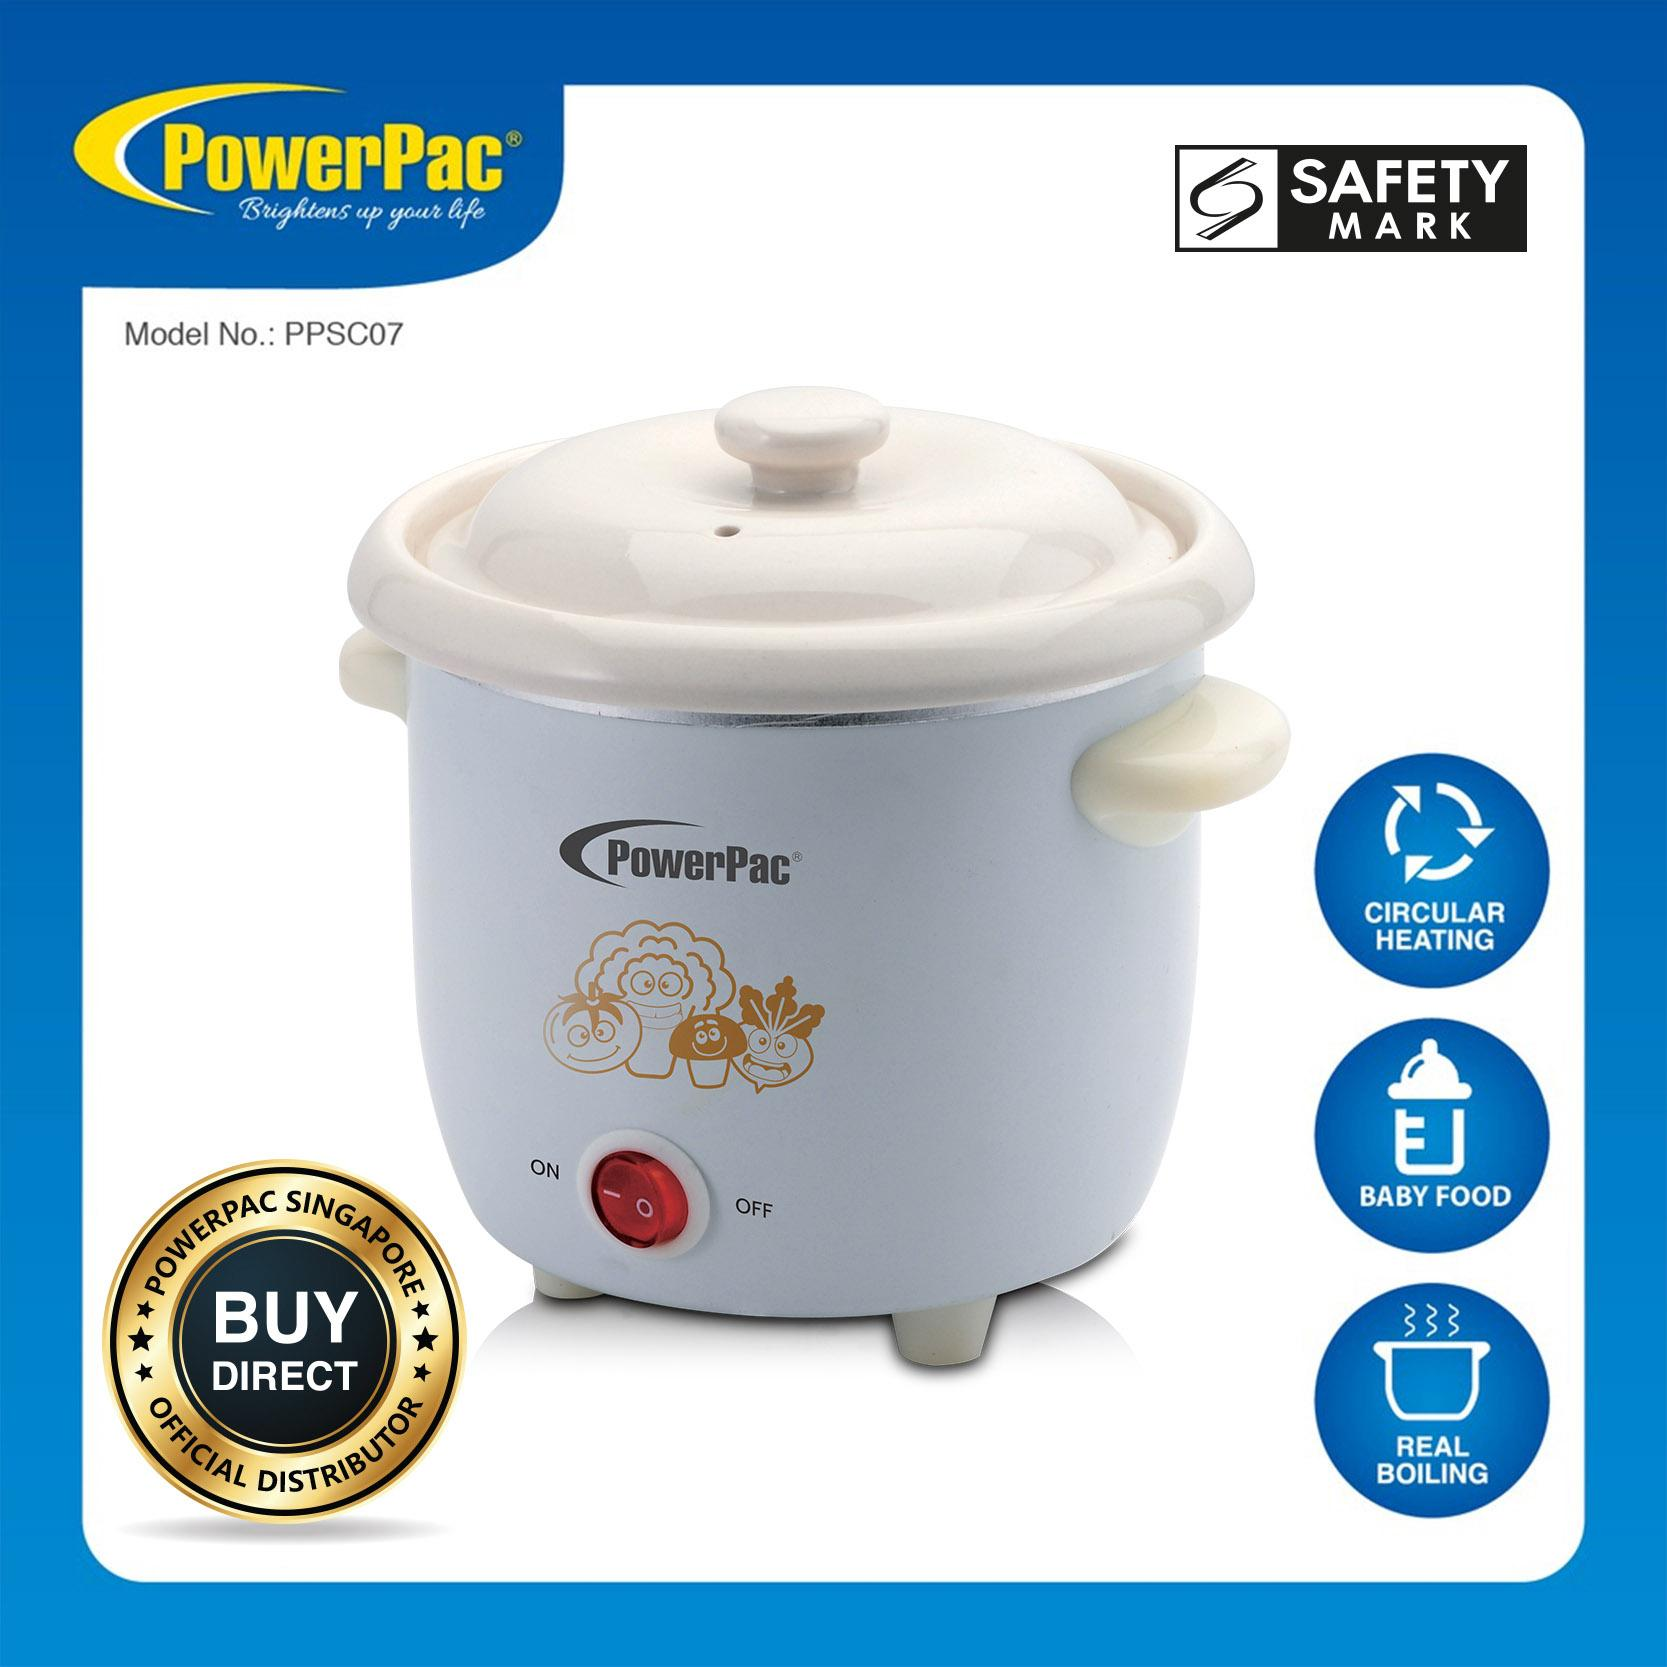 PowerPac 0.7L Slow Cooker with Preset Function Selector (PPSC07)